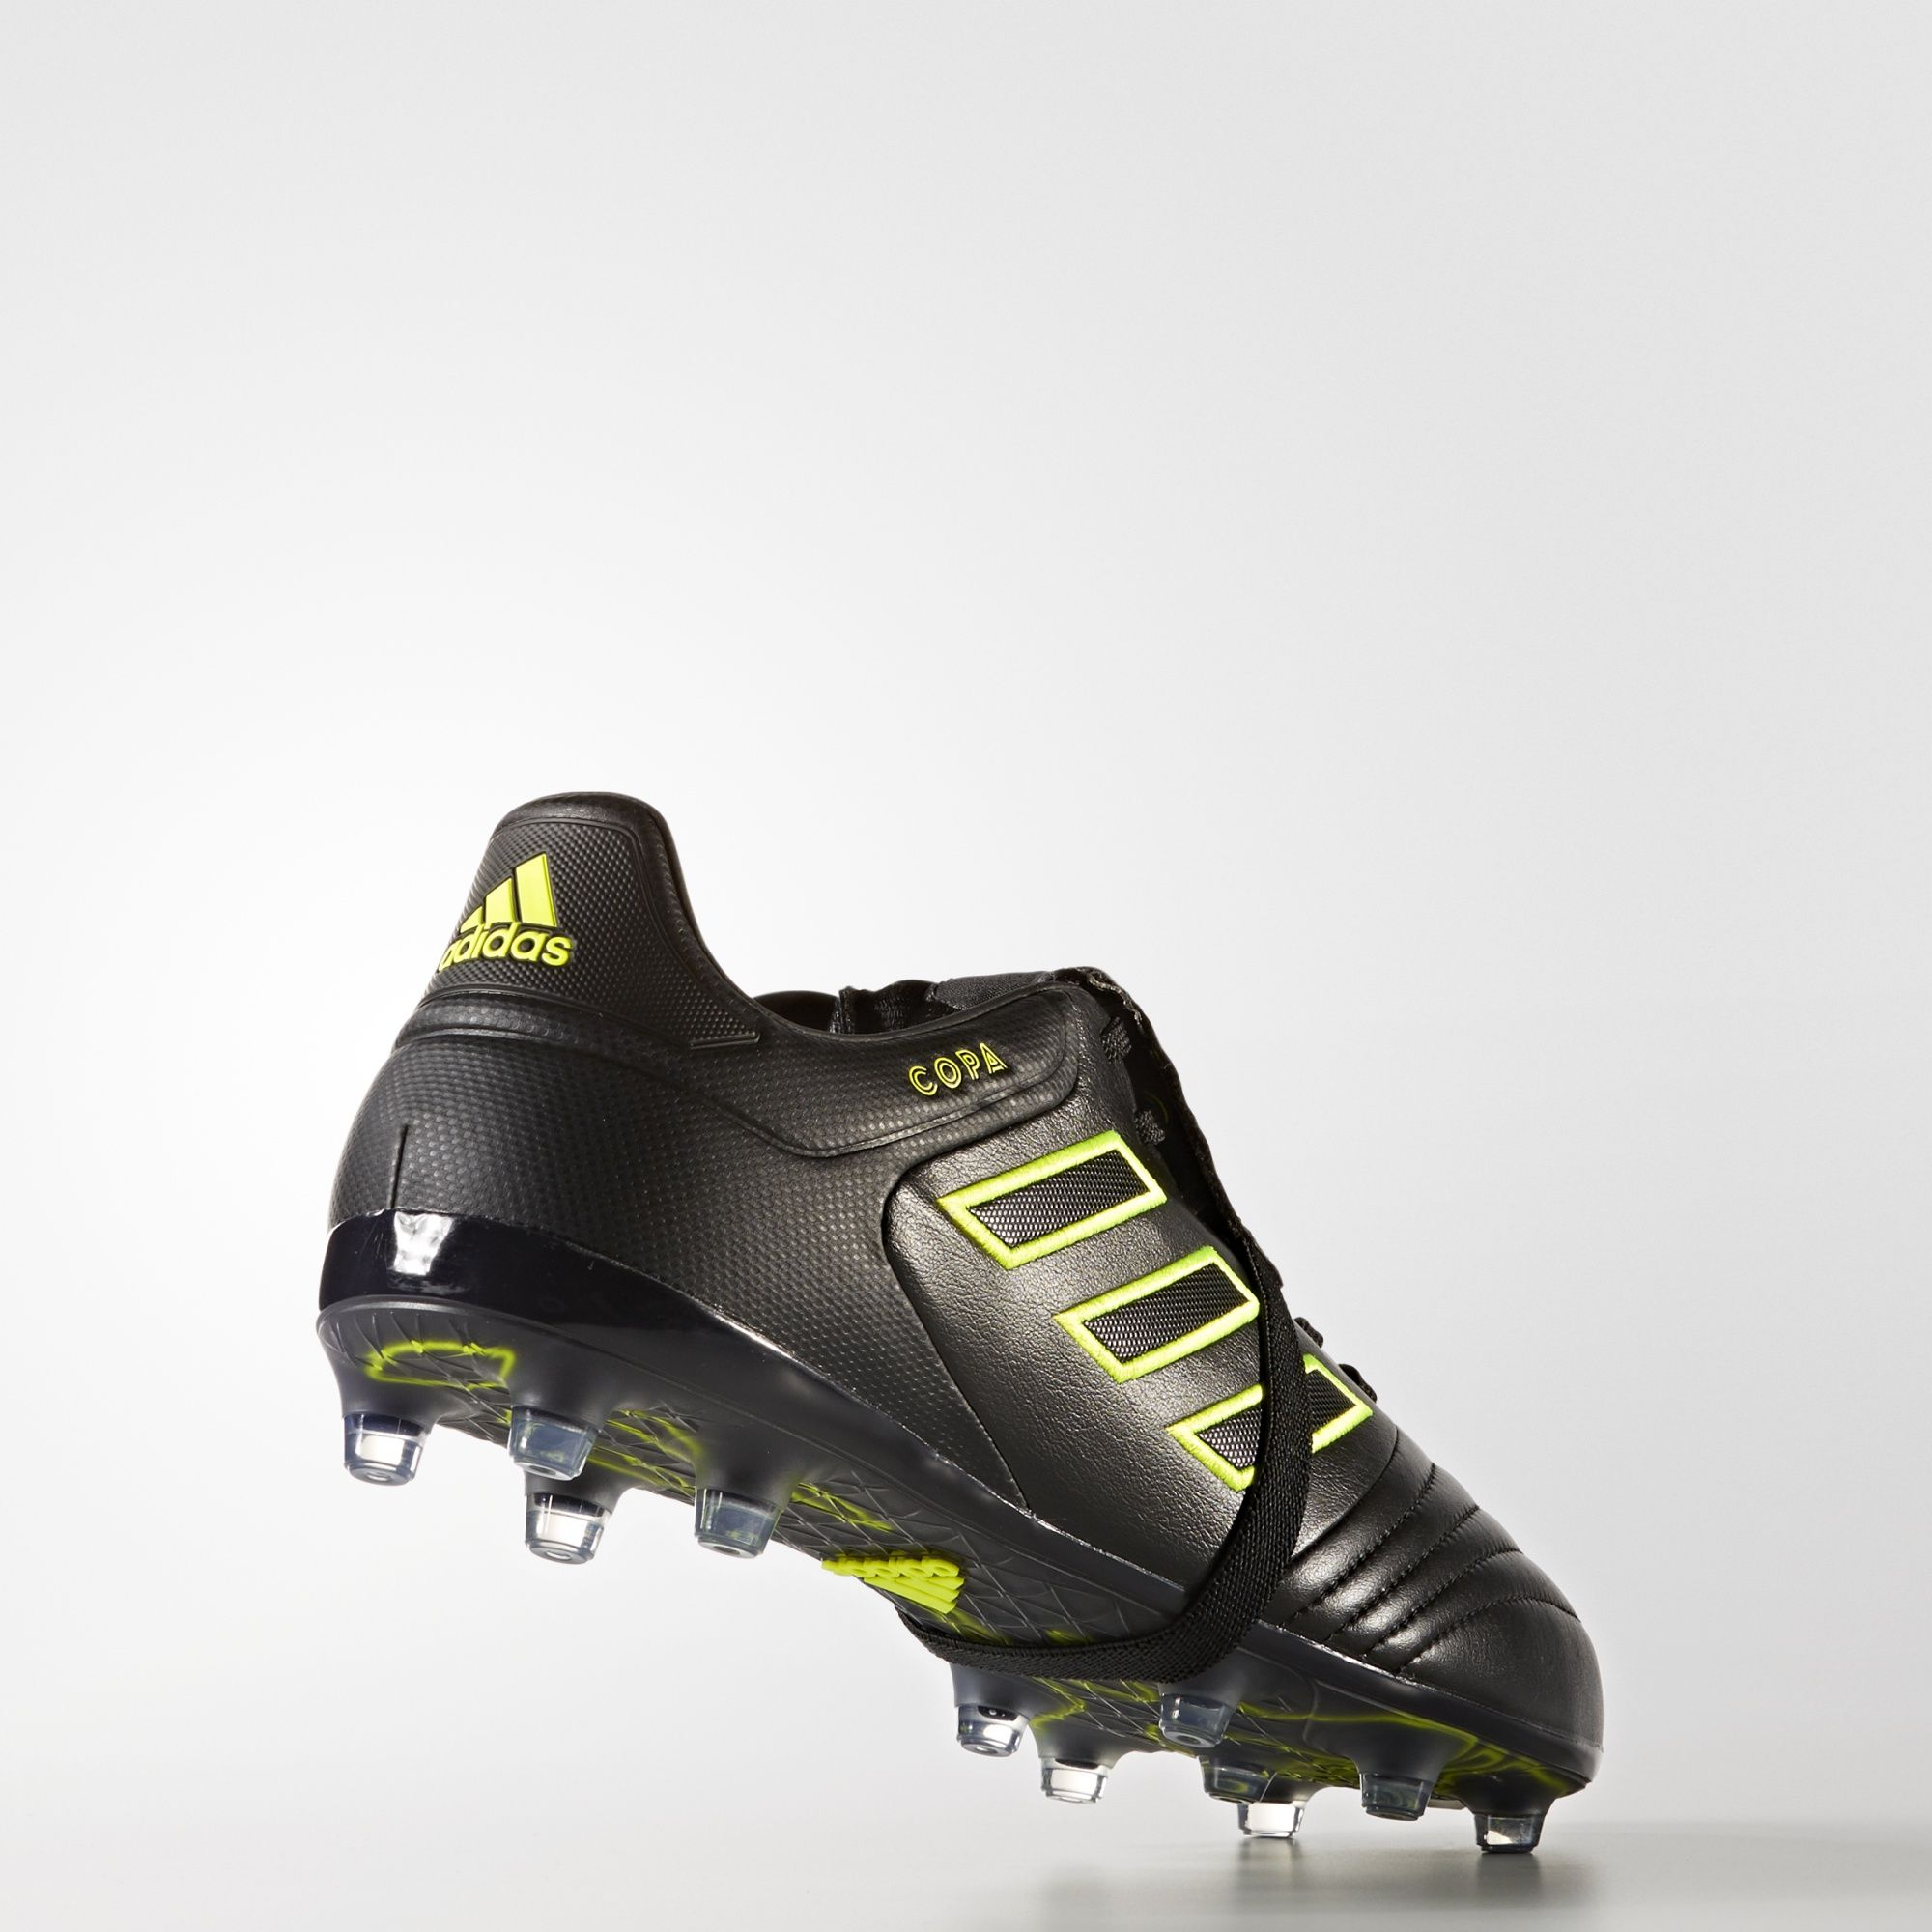 new arrival 1ebd2 2c681 ... Click to enlarge image  adidas copa gloro 17 2 firm ground boots core black core black solar yellow e.jpg  ...